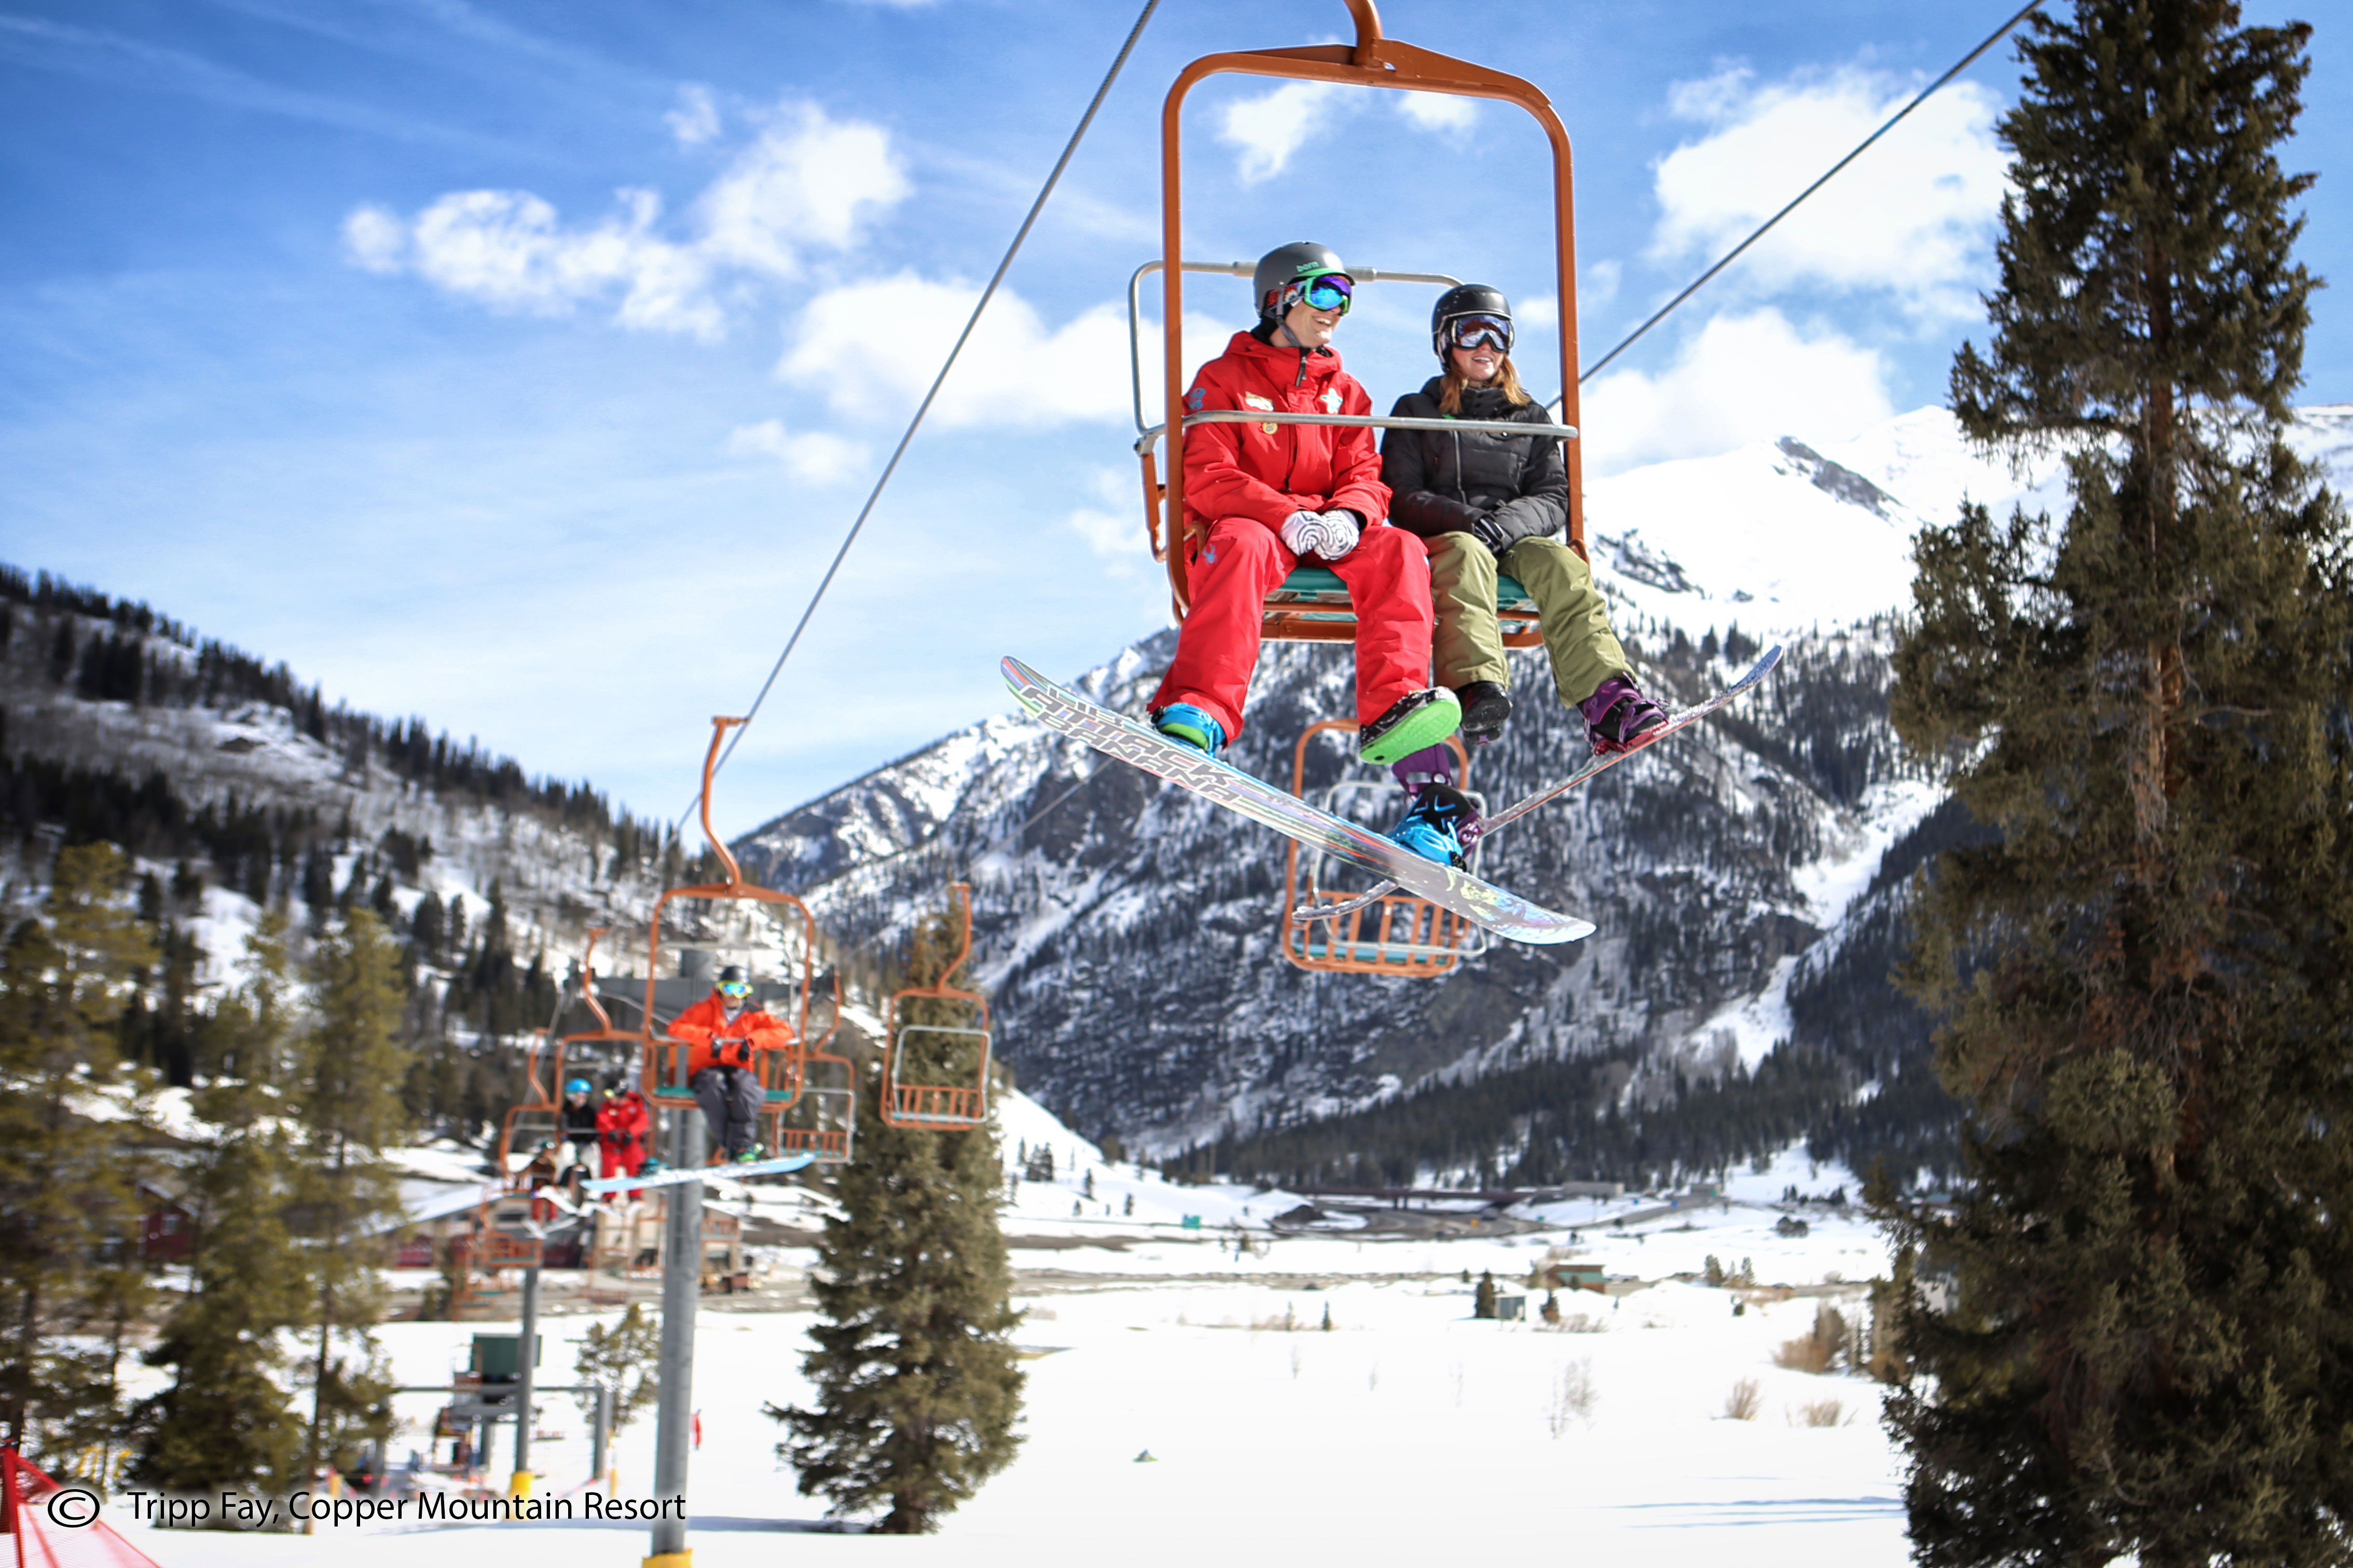 snowshoeing - Topical coverage at The Spokesman-Review